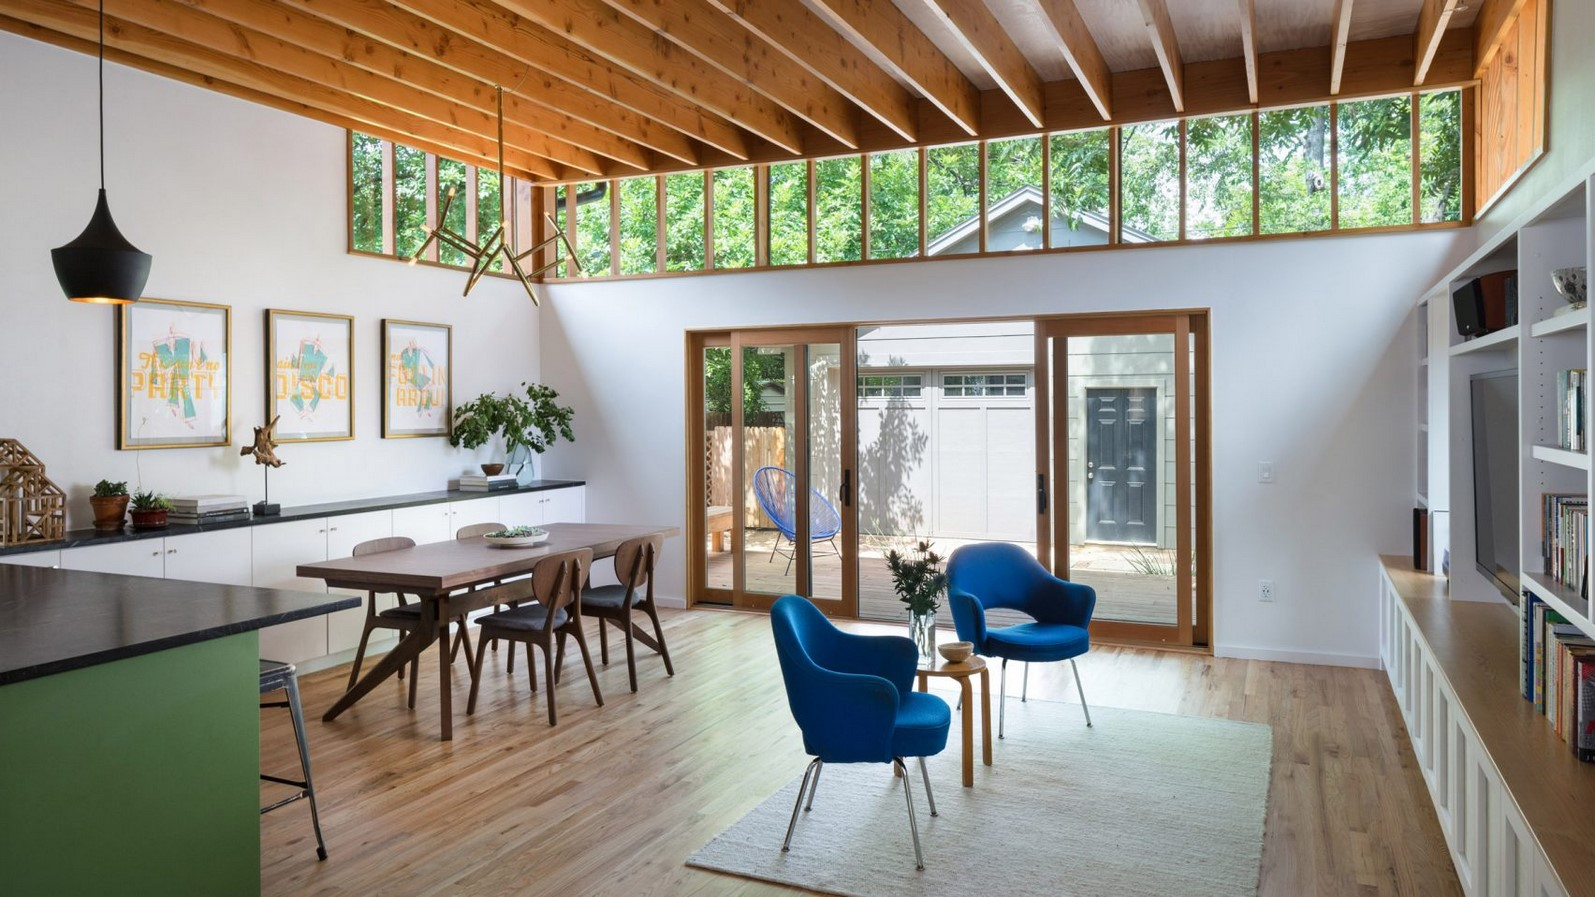 Renovated Texas Bungalow by Murray Legge Architecture - Sheet1